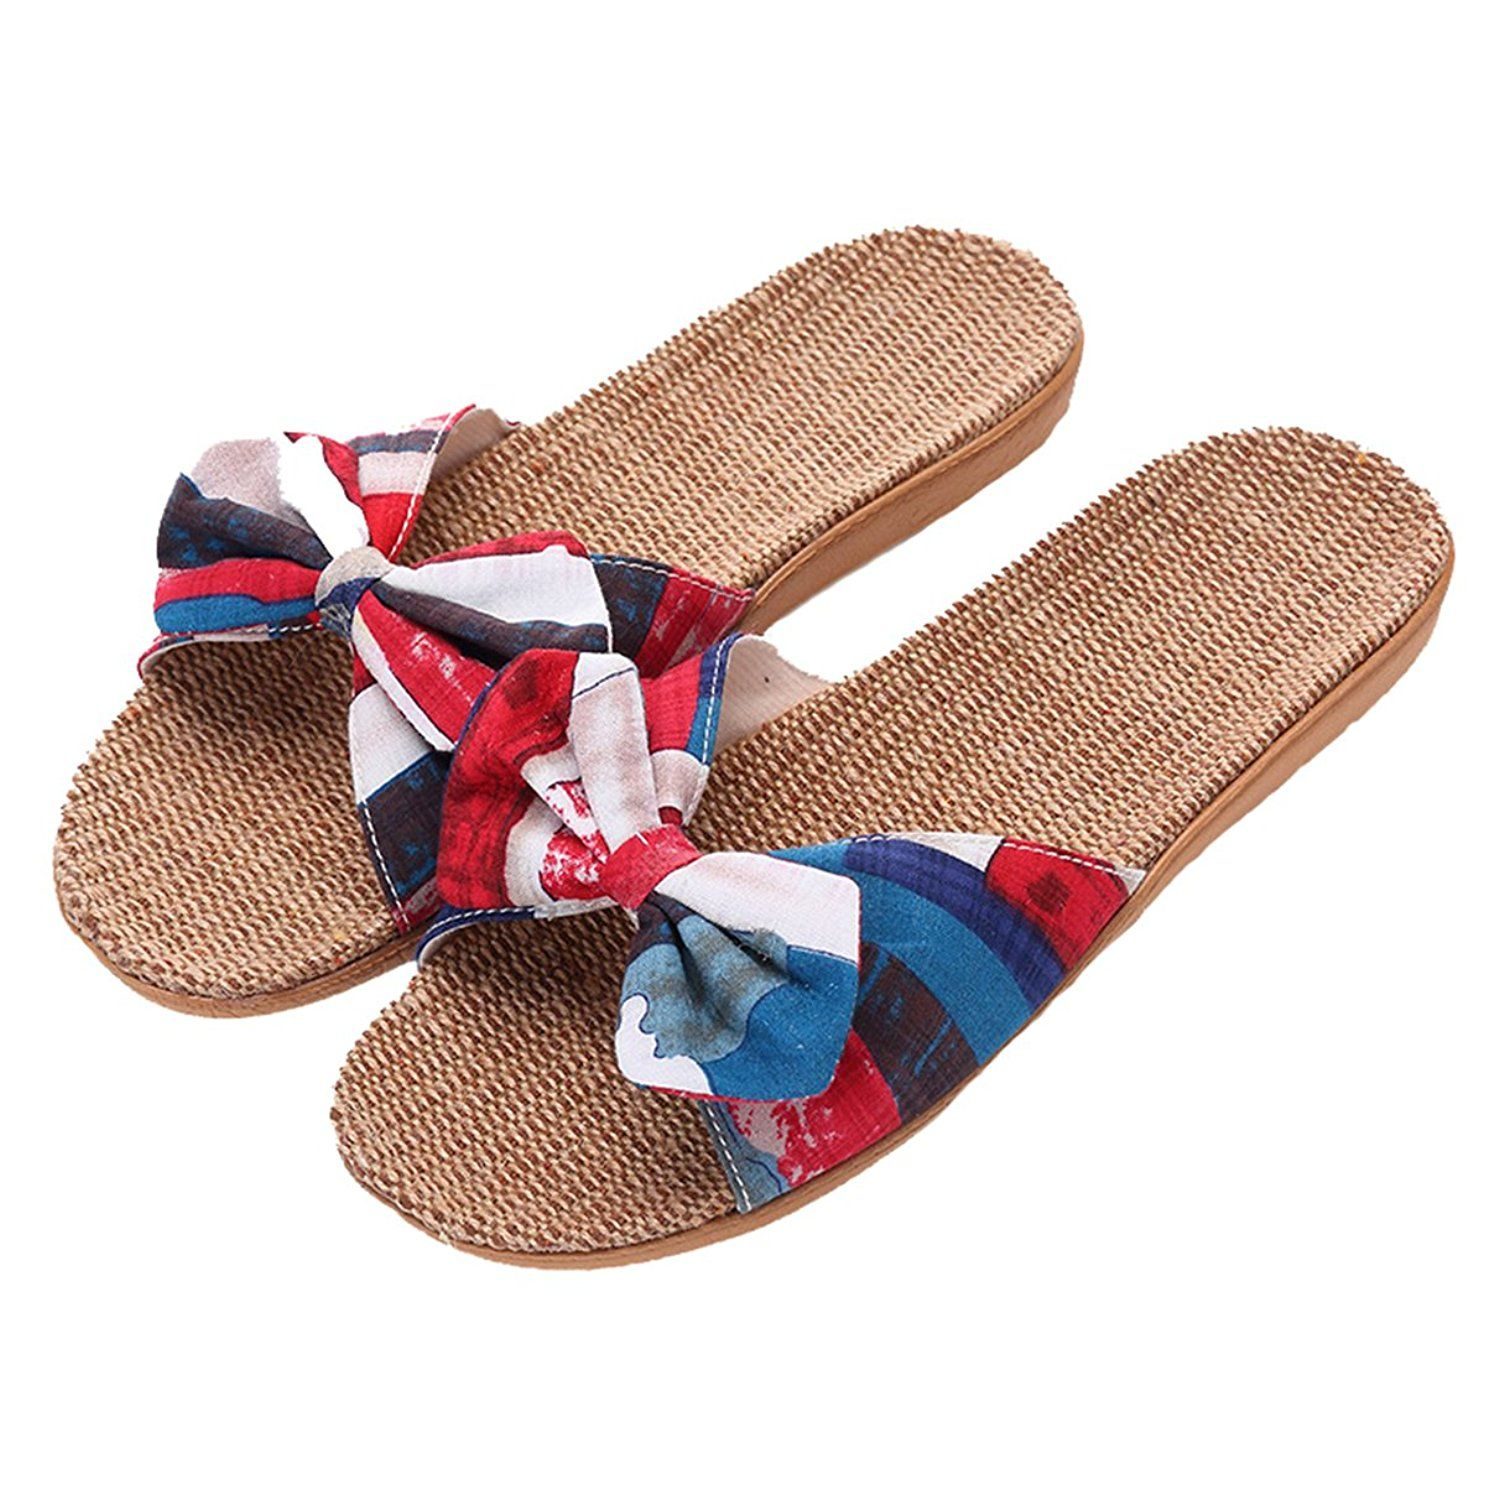 Xsby Womens Cozy Indoor Cotton Flax Home Slippers Non-Slip